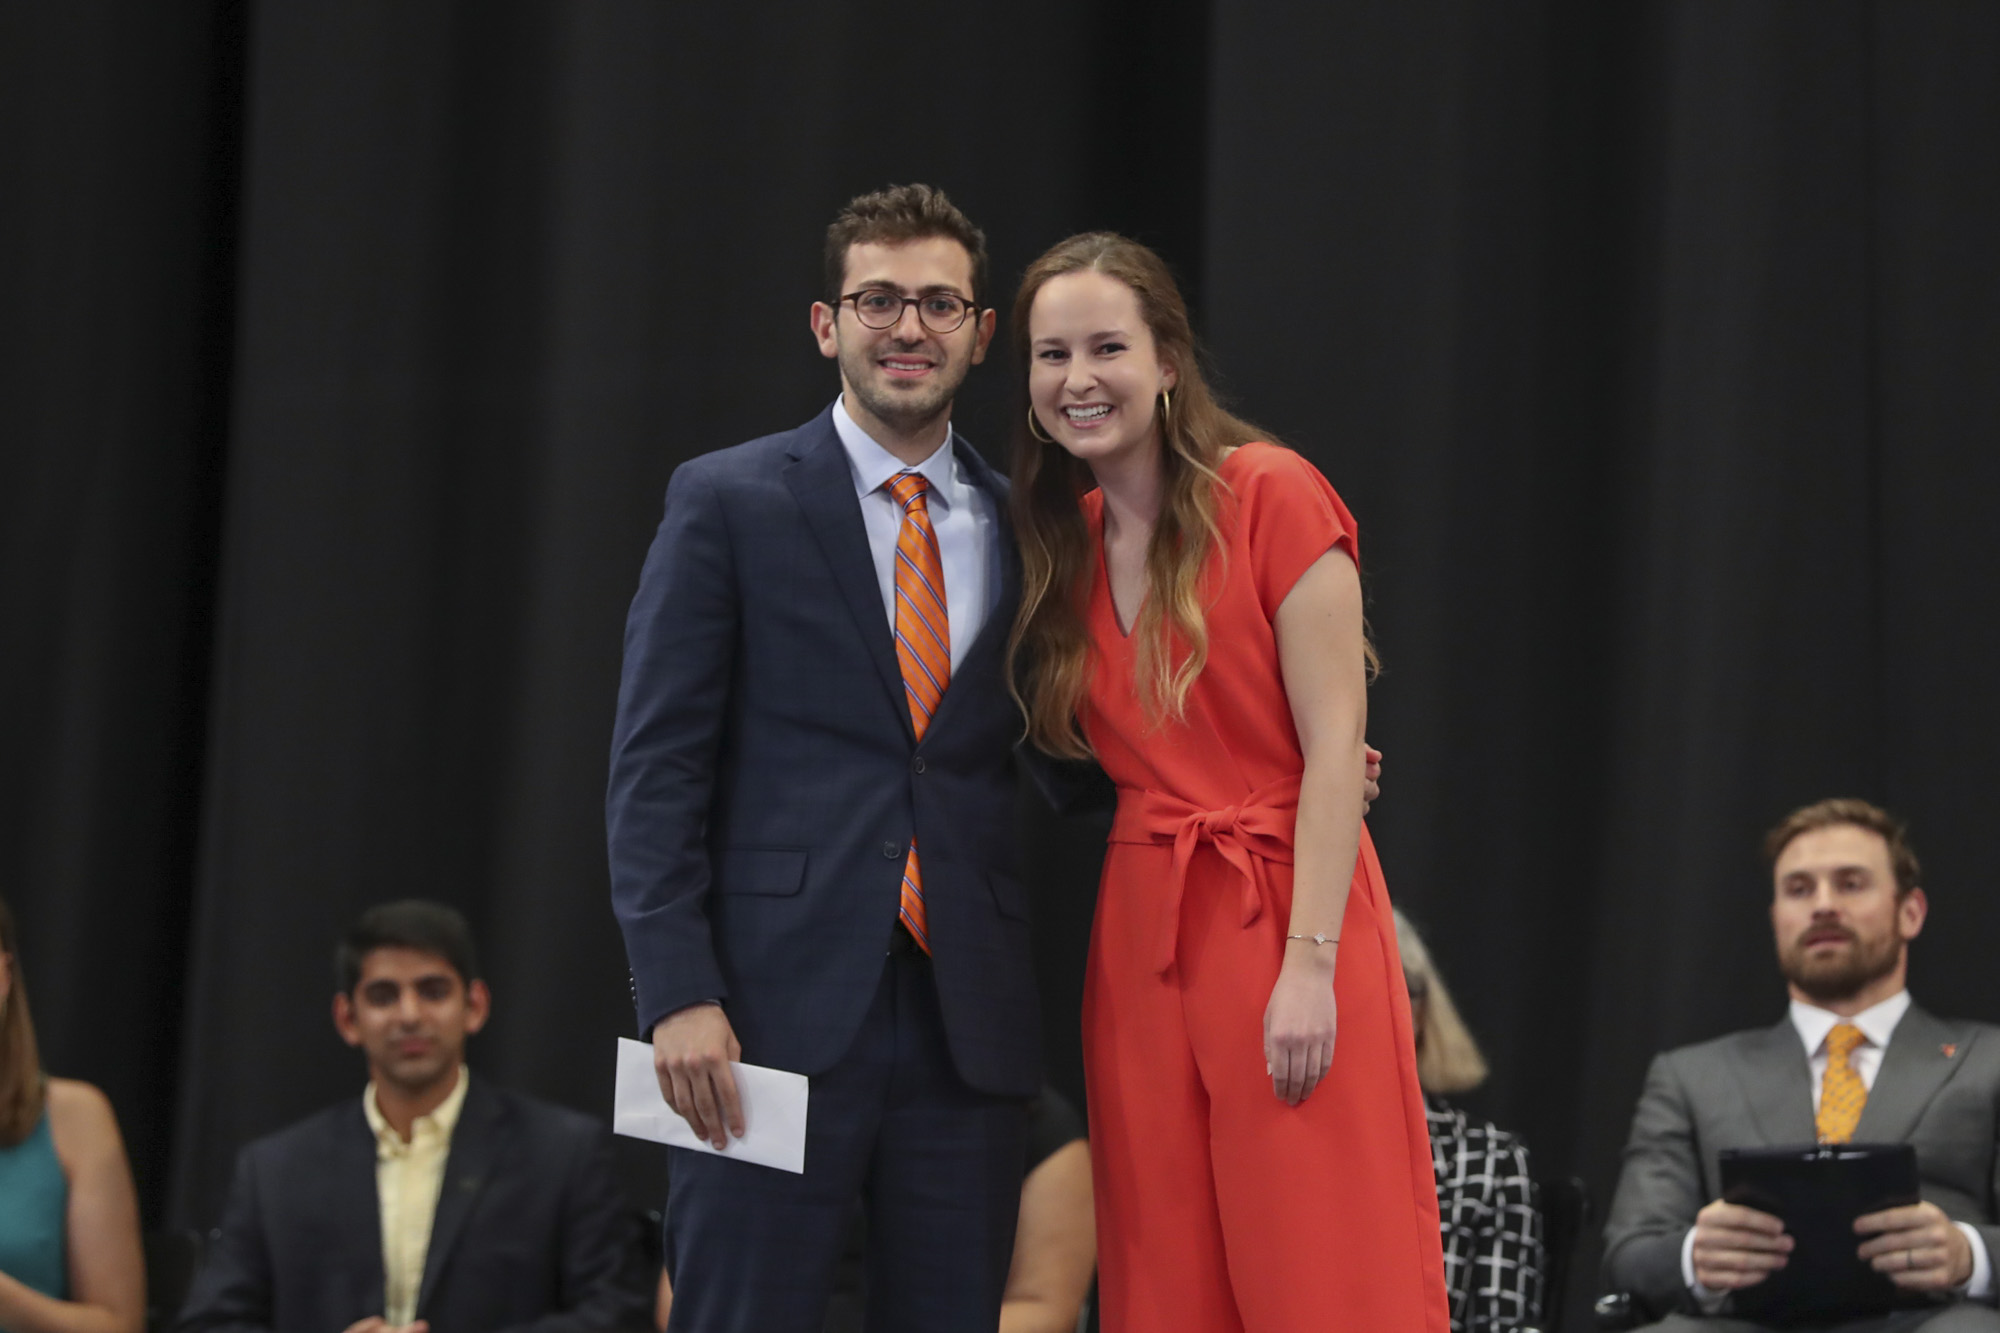 The Seven Society awarded its James Earle Sargeant Award to Tuff Armenia Project, which was accepted by its founder, graduating engineering student Leon Yacoubian. Kirby Evett, trustee of the Class of 2018, presented the award.